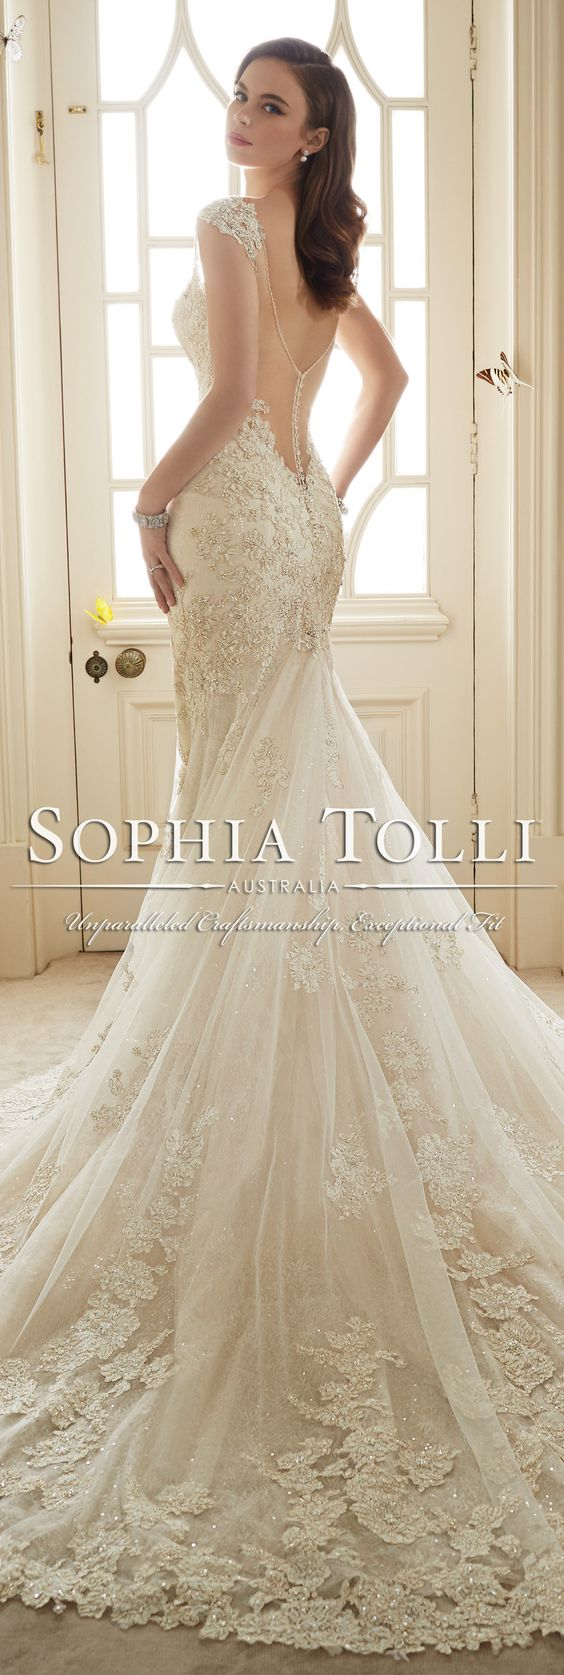 The Sophia Tolli Spring 2016 Wedding Dress Collection - Style No. Y11651 - Sultana #laceweddingdress: